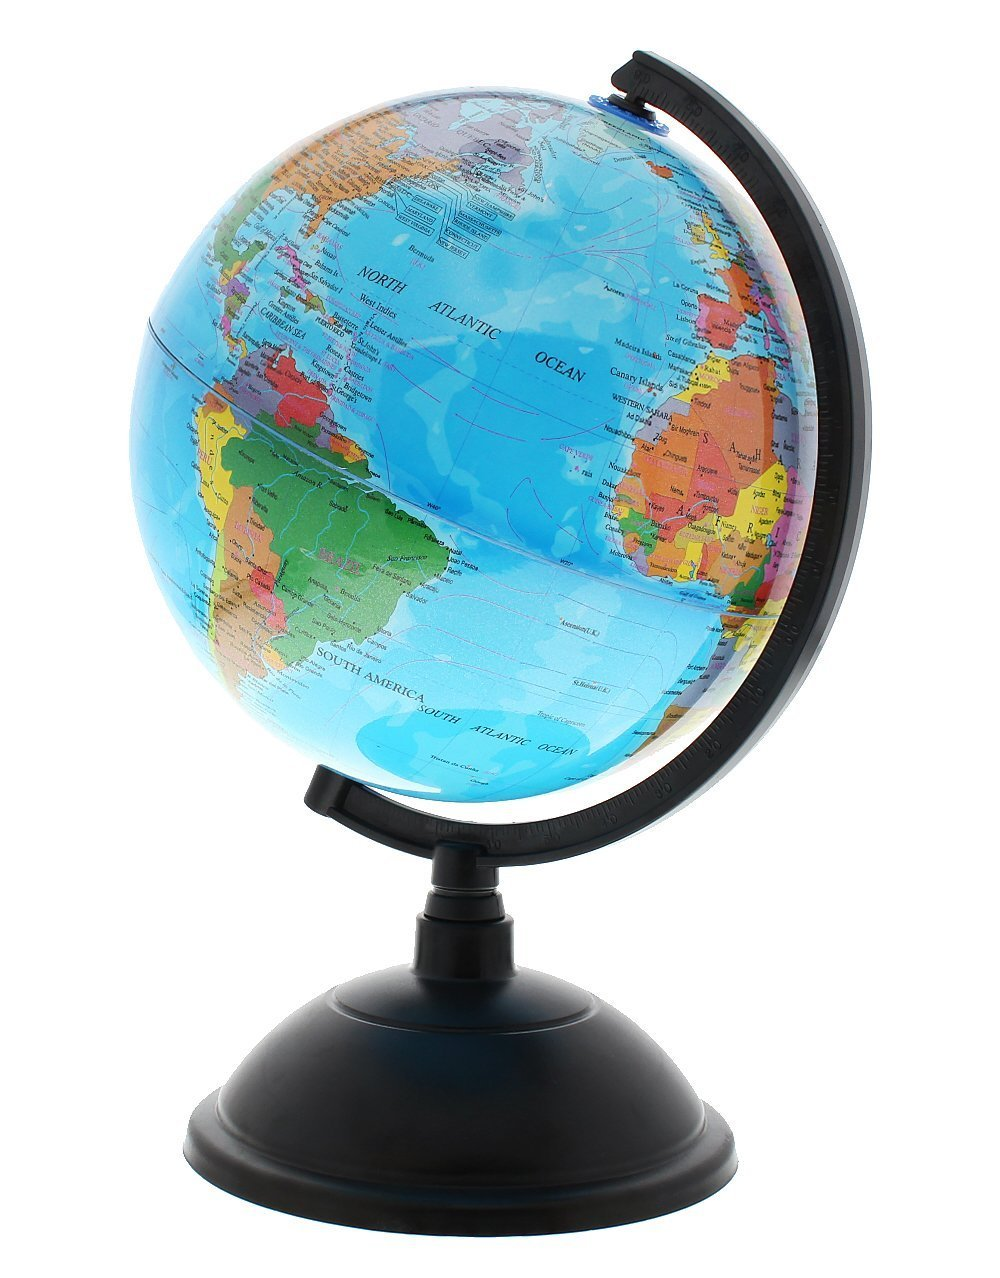 PROW® 8 Inch Illuminated 2 in 1 World Globe Interactive Globe for Kid's Room Lighting or Traveler plus Compass (English version)